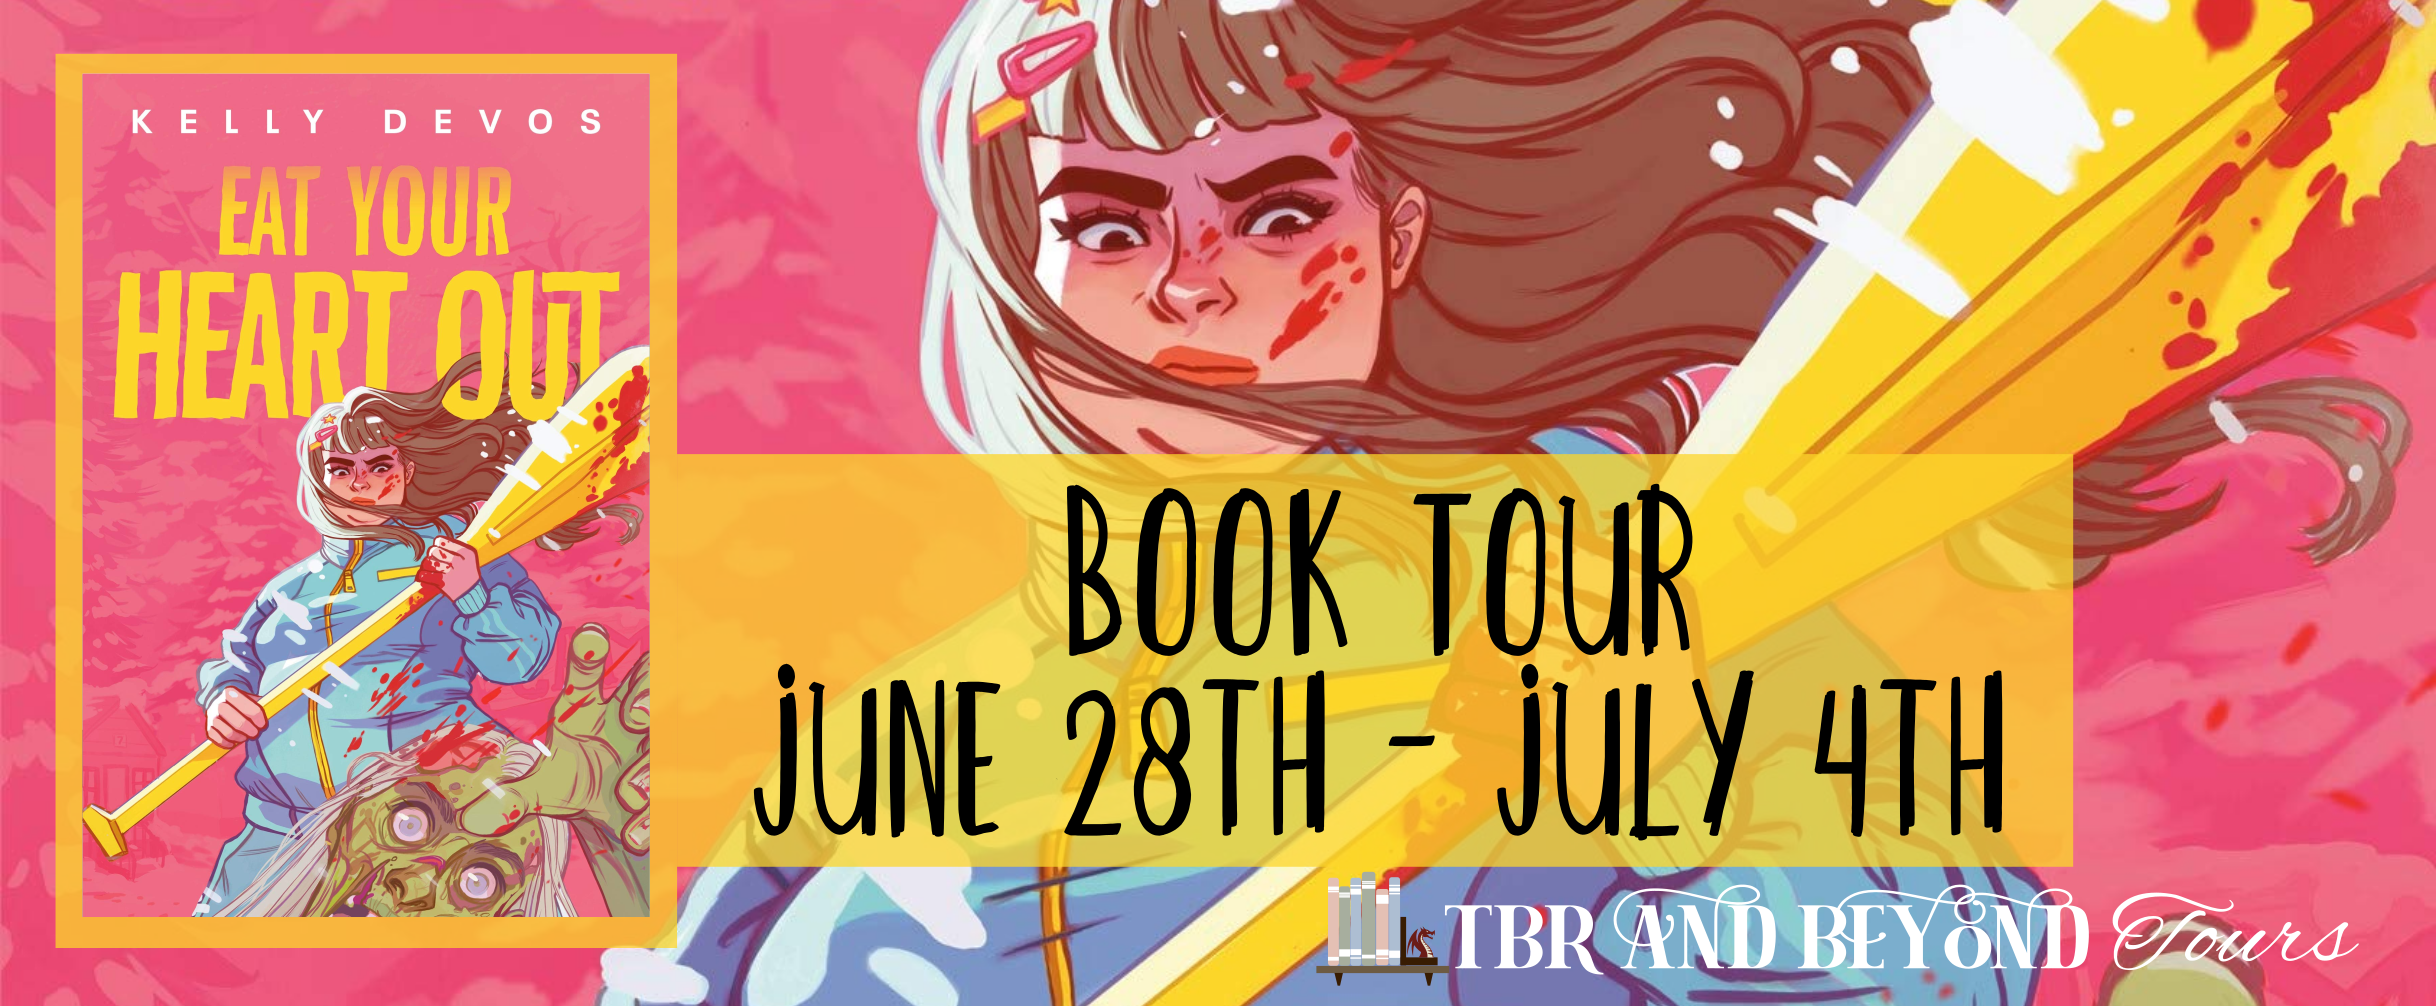 Eat Your Heart Out tour banner